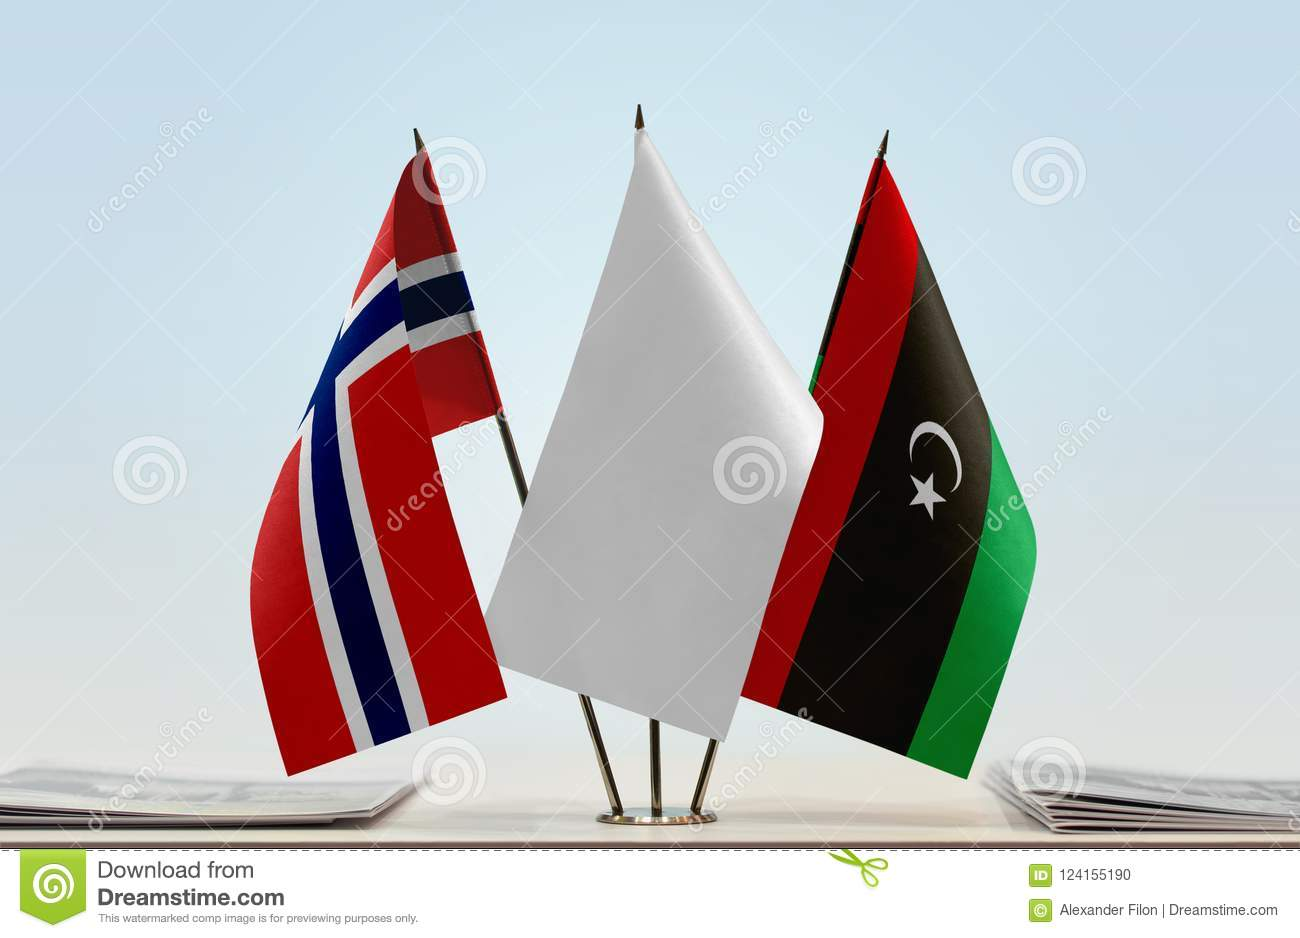 Flags of Norway and Libya